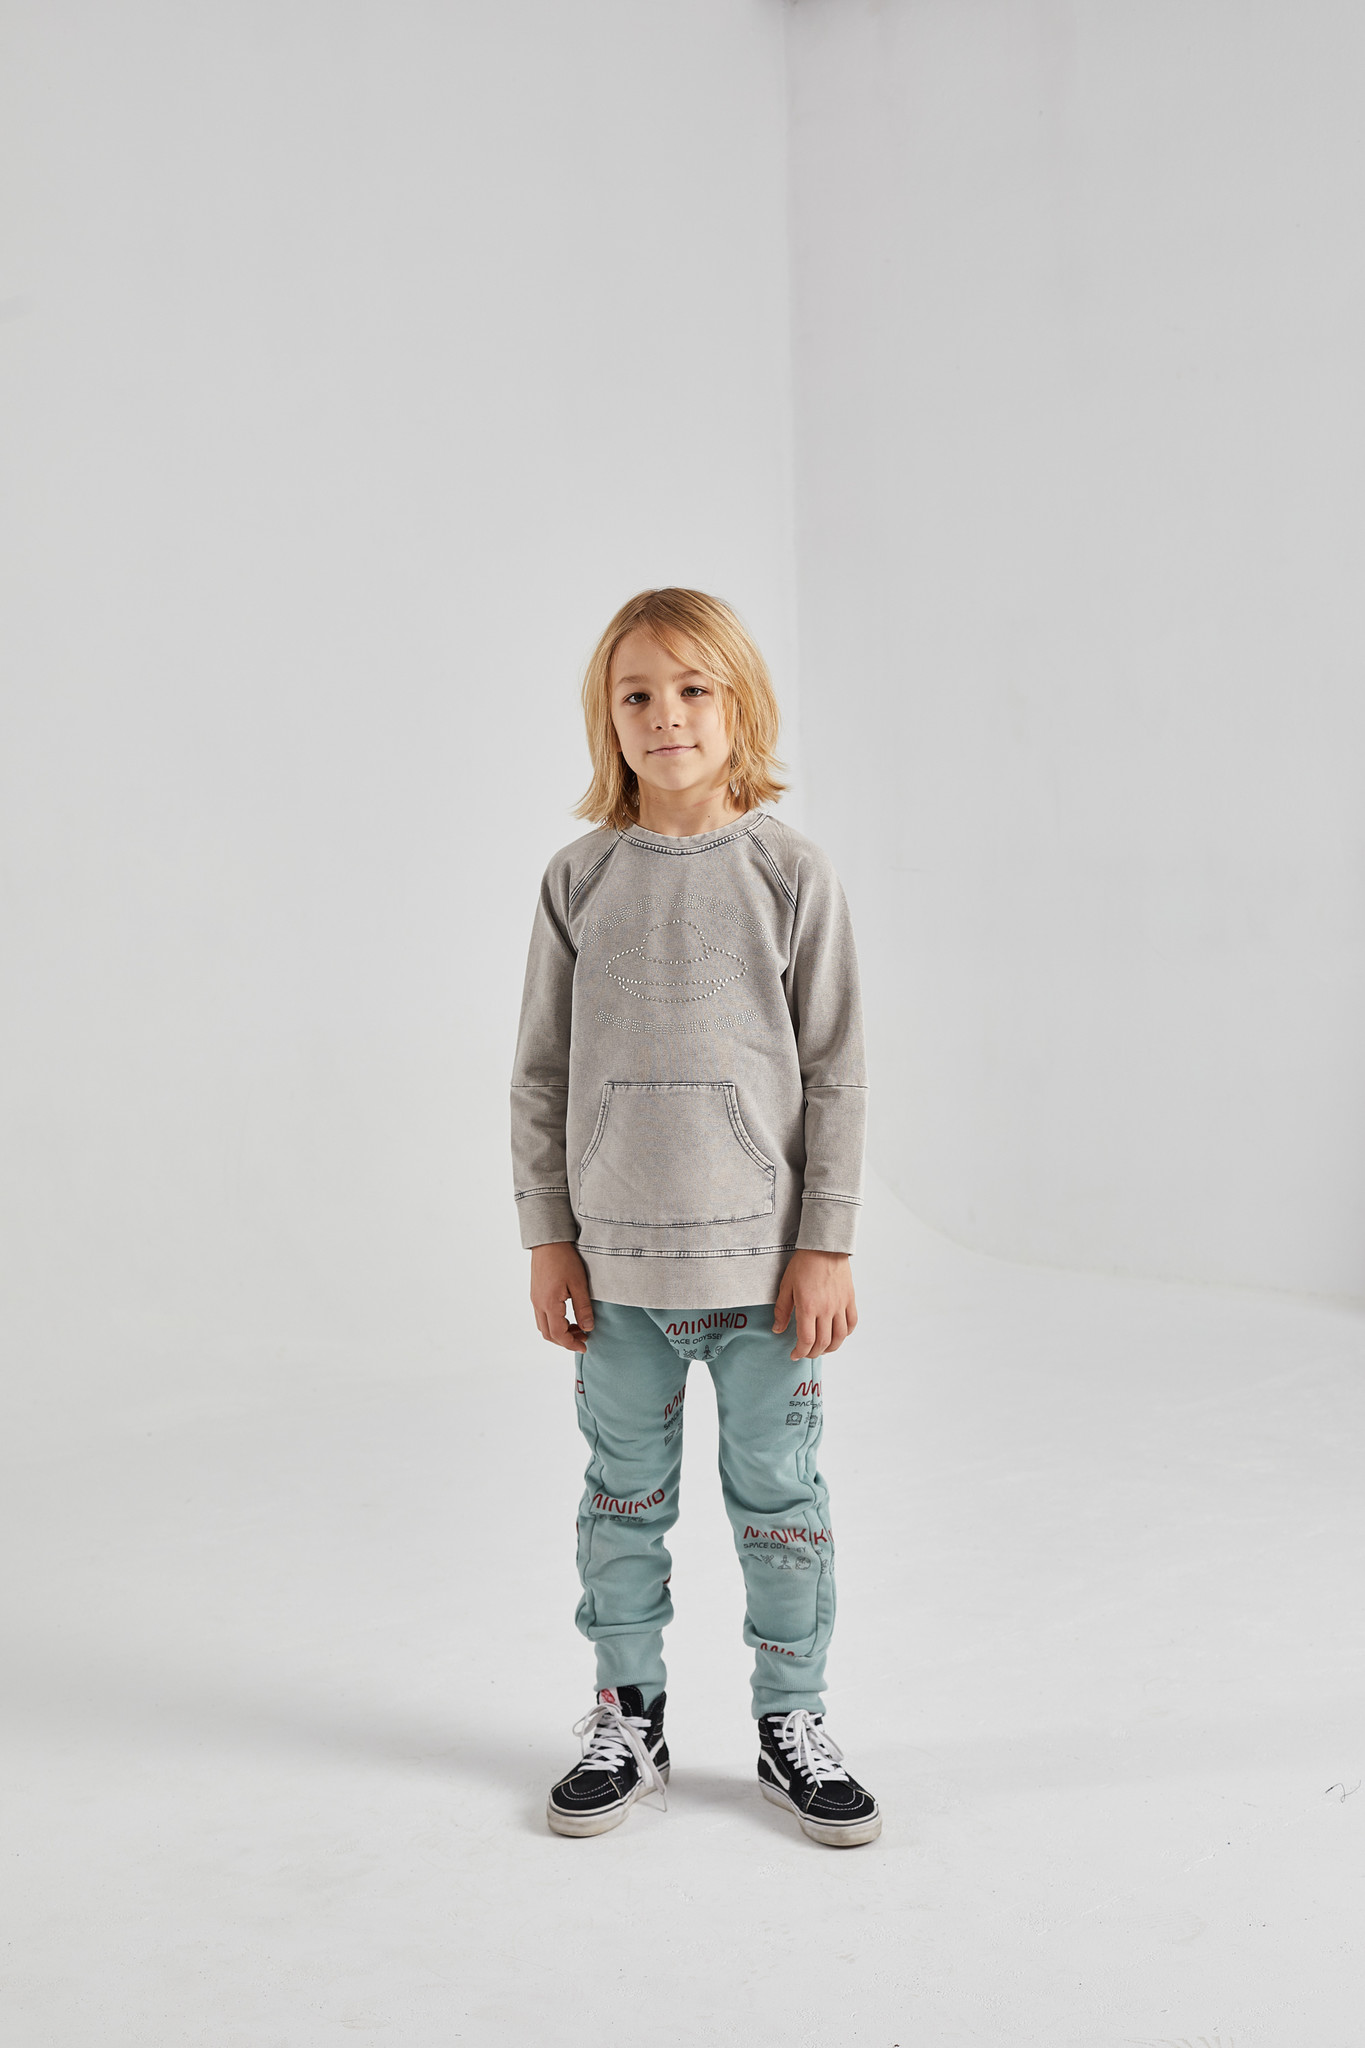 Minikid ACID GREY SWEATER | UNISEX SWEATER WITH FRONT POCKET | MINIKID